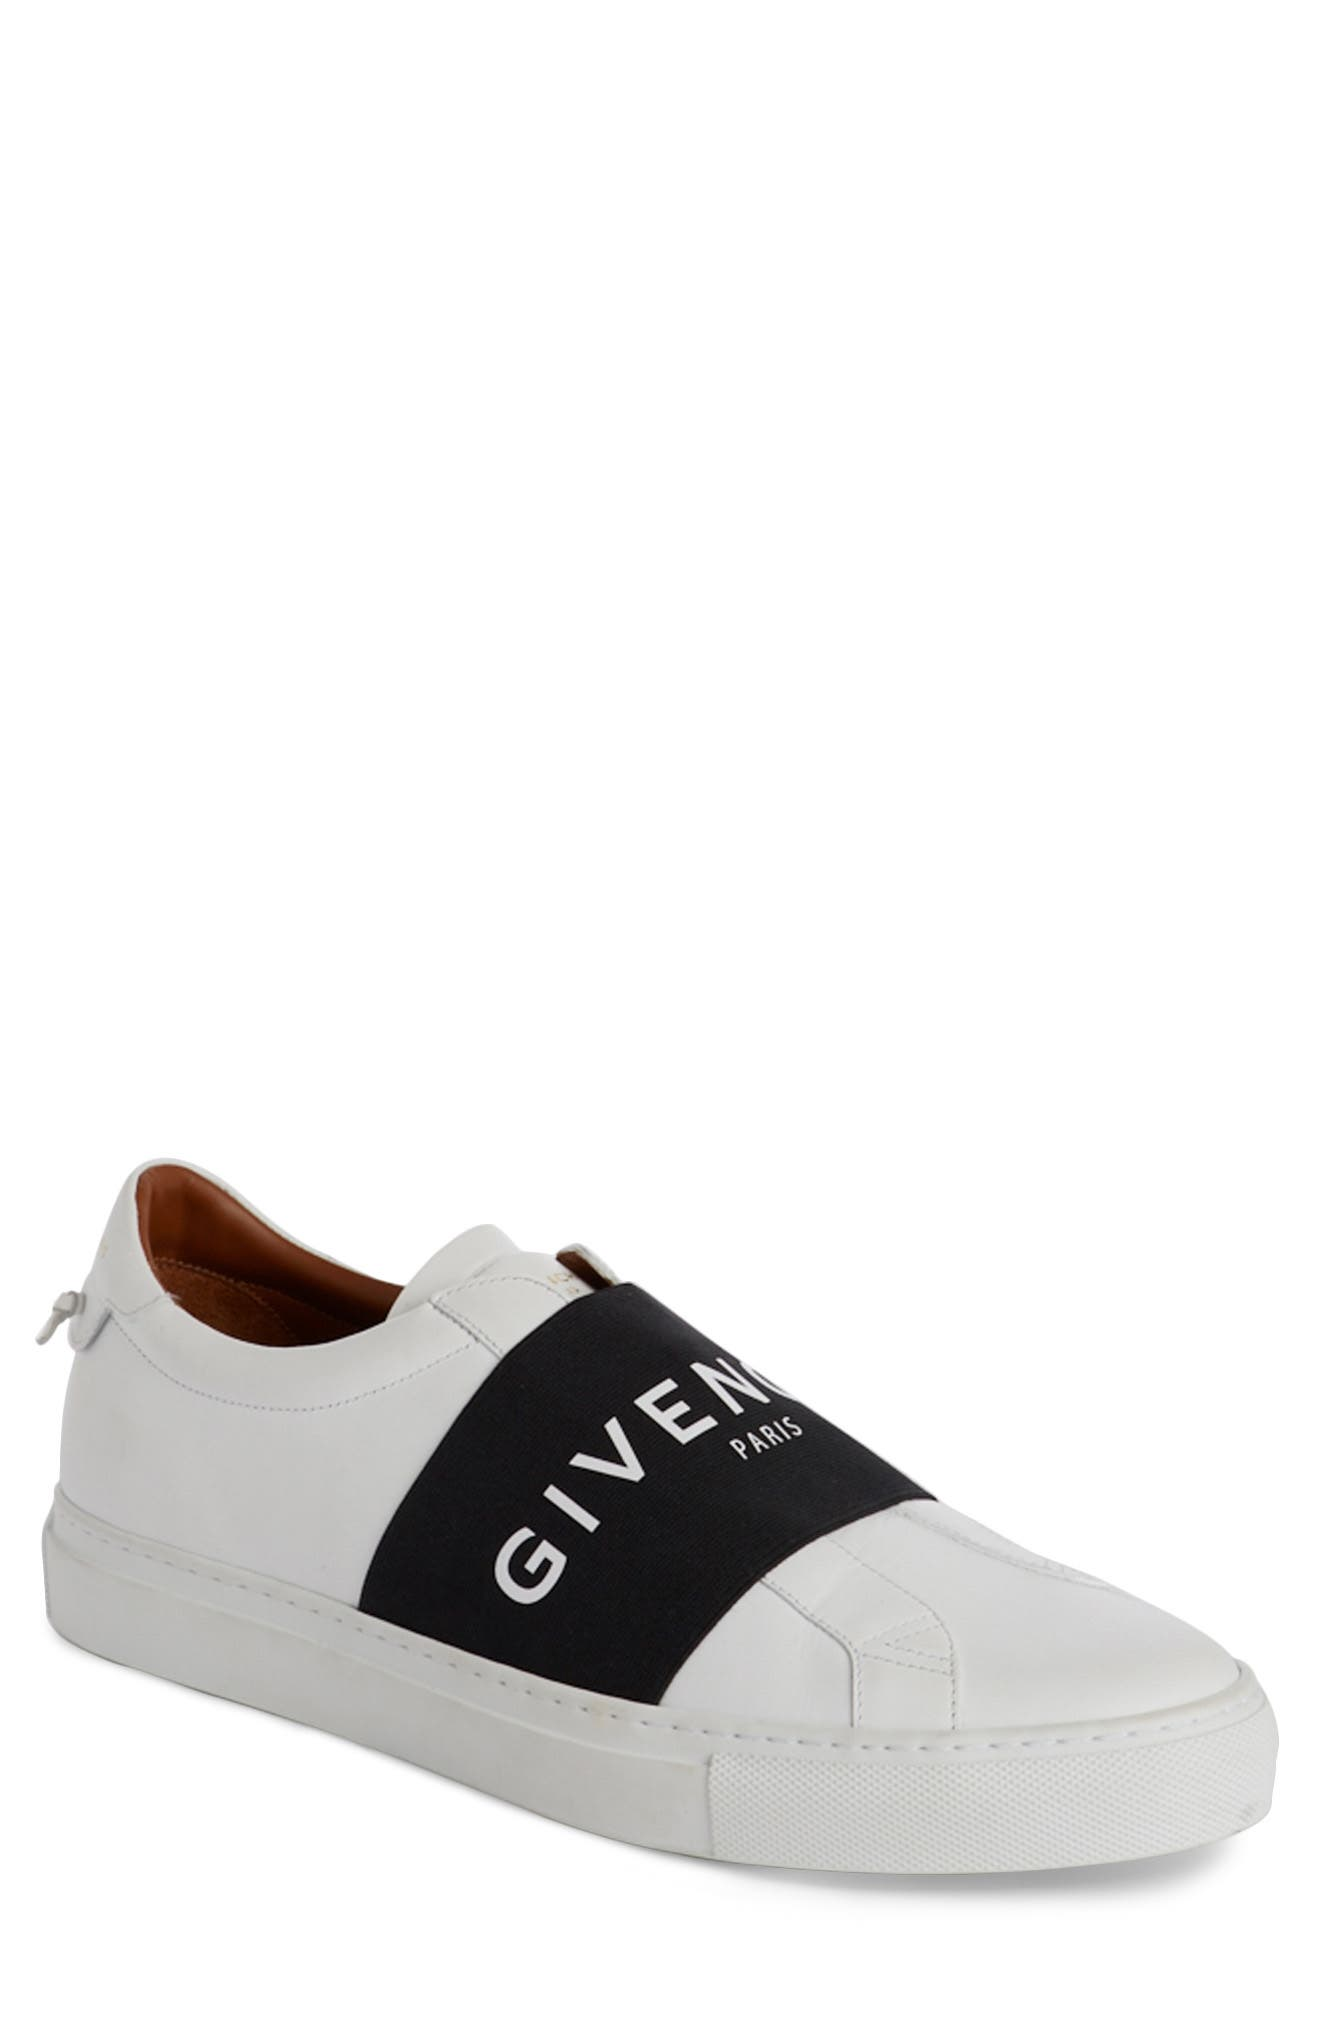 Alternate Image 1 Selected - Givenchy Logo Strap Slip-On Sneaker (Women)